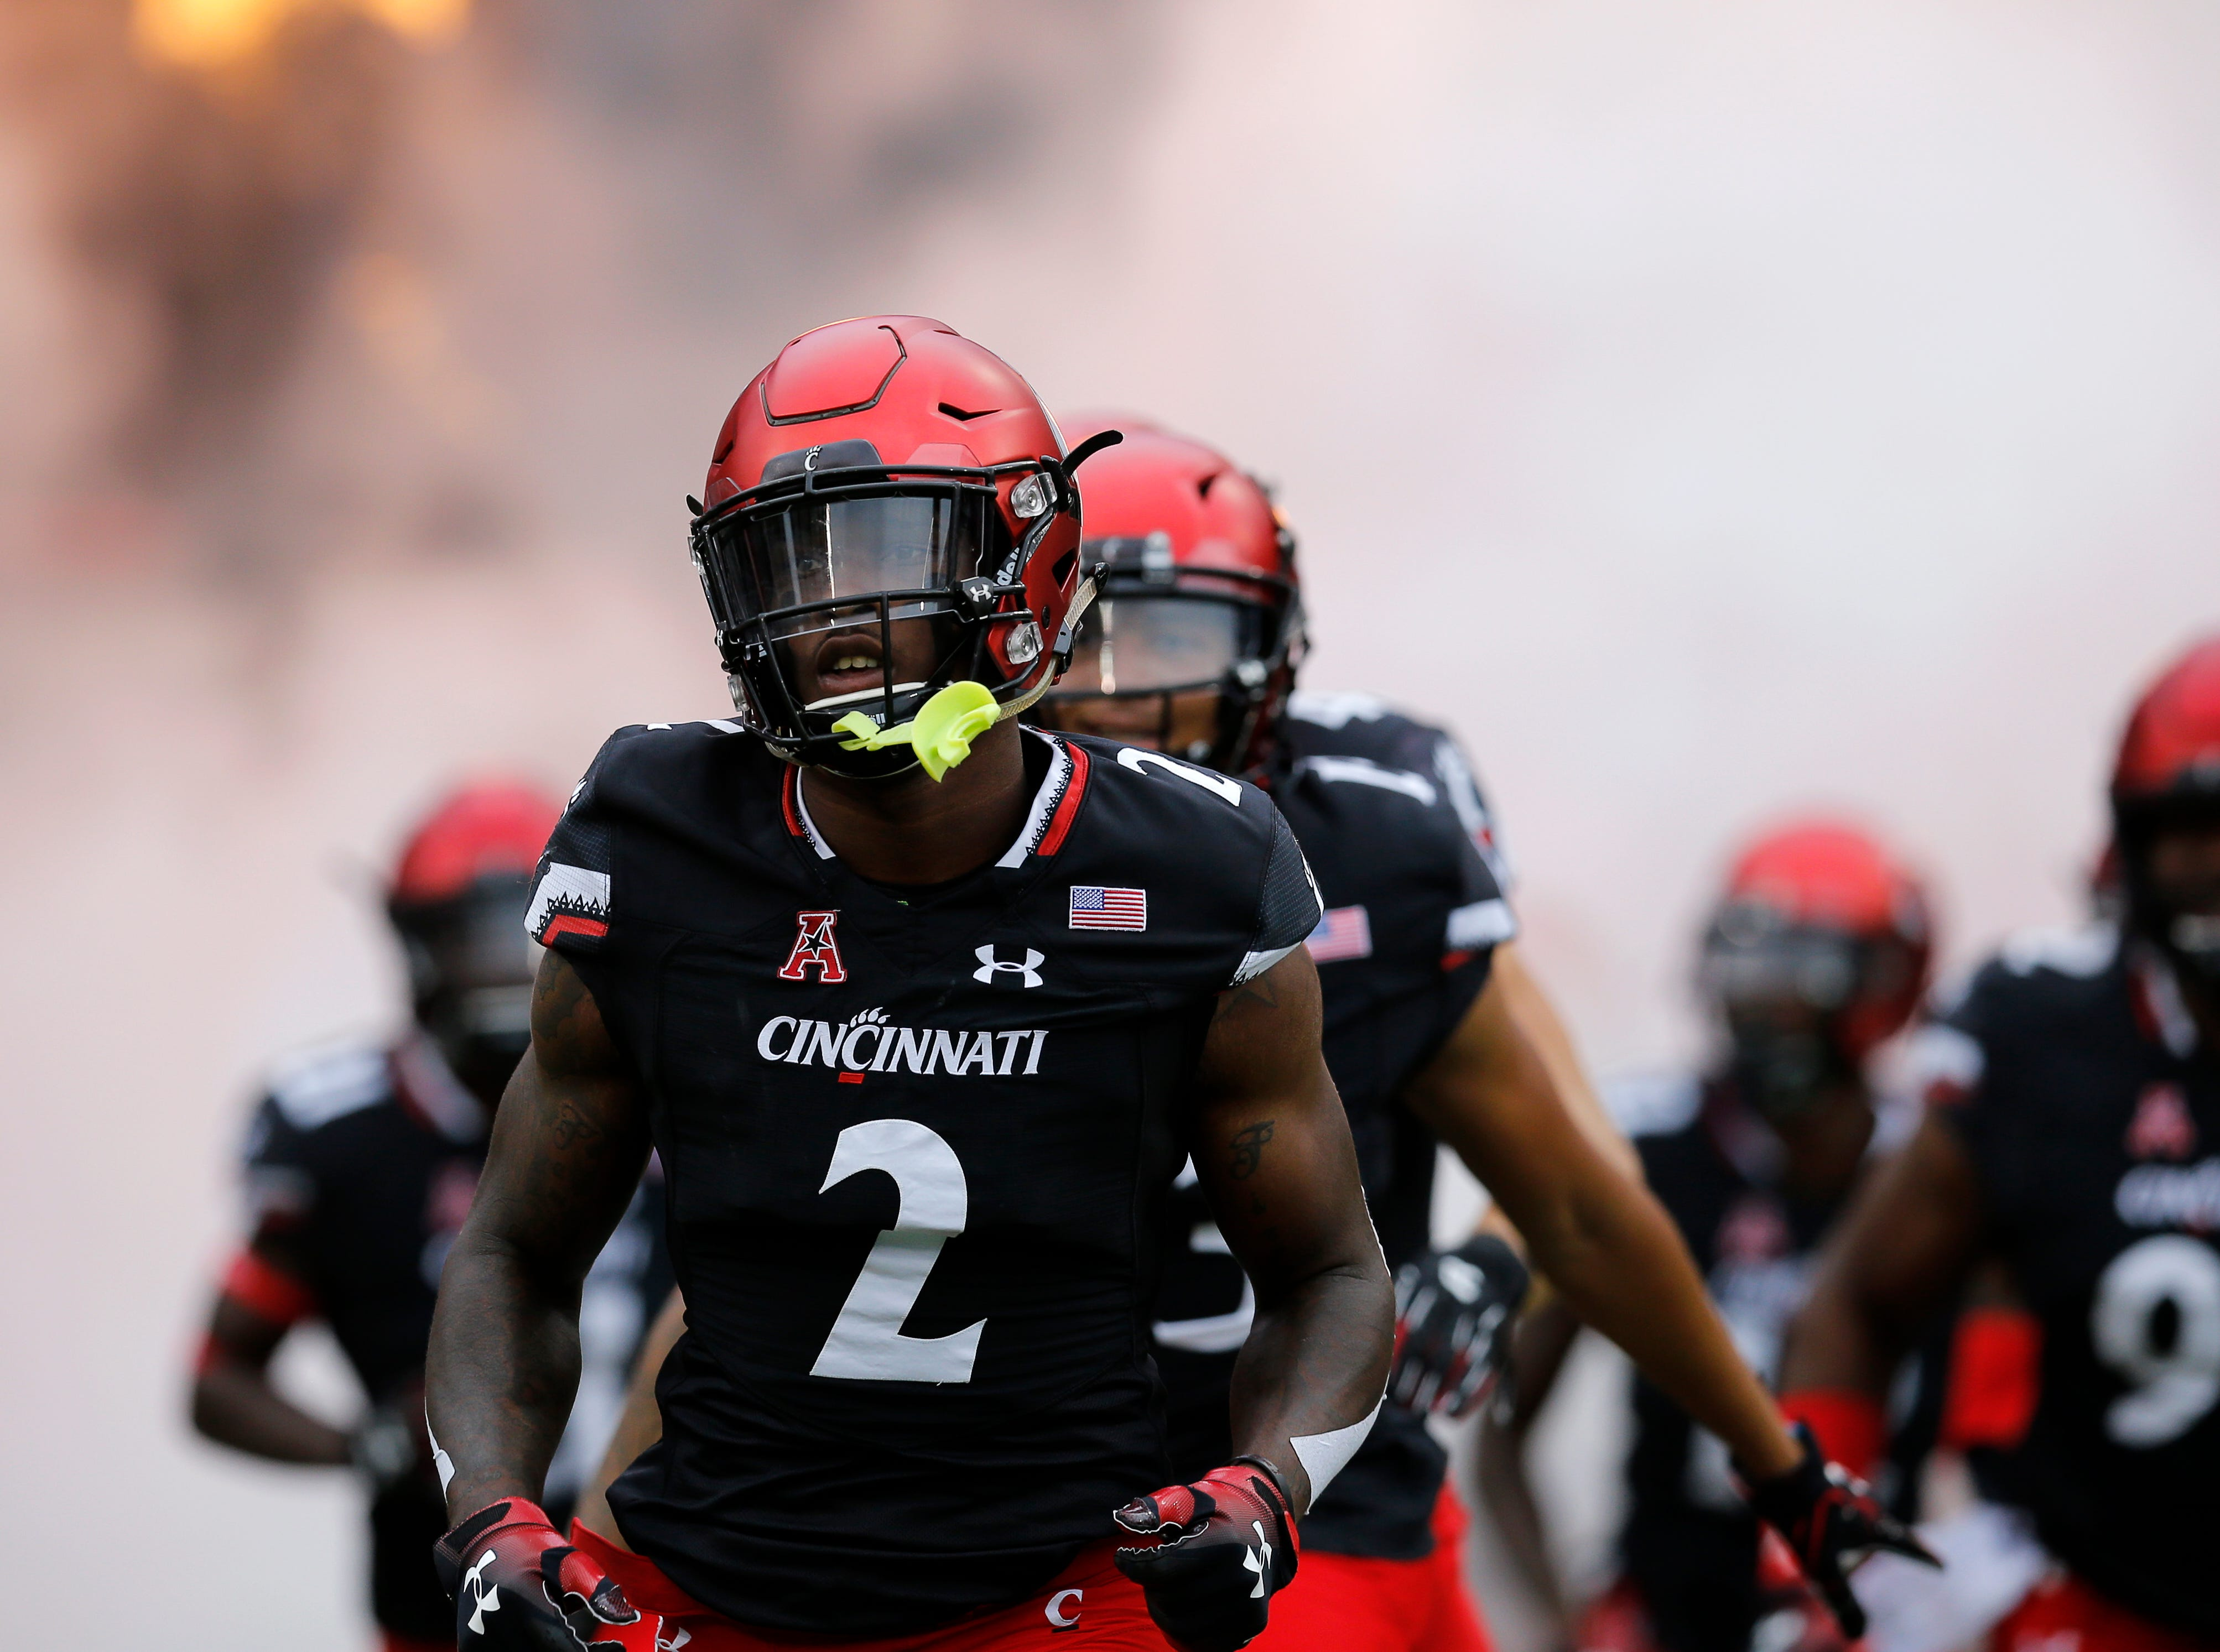 Cincinnati Bearcats cornerback Tyrell Gilbert (2) and the Bearcats take the field before the first quarter of the NCAA football game between the Cincinnati Bearcats and the Ohio Bobcats at Nippert Stadium on the University of Cincinnati campus in Cincinnati on Saturday, Sept. 22, 2018. The Bobcats led 24-7 at halftime.